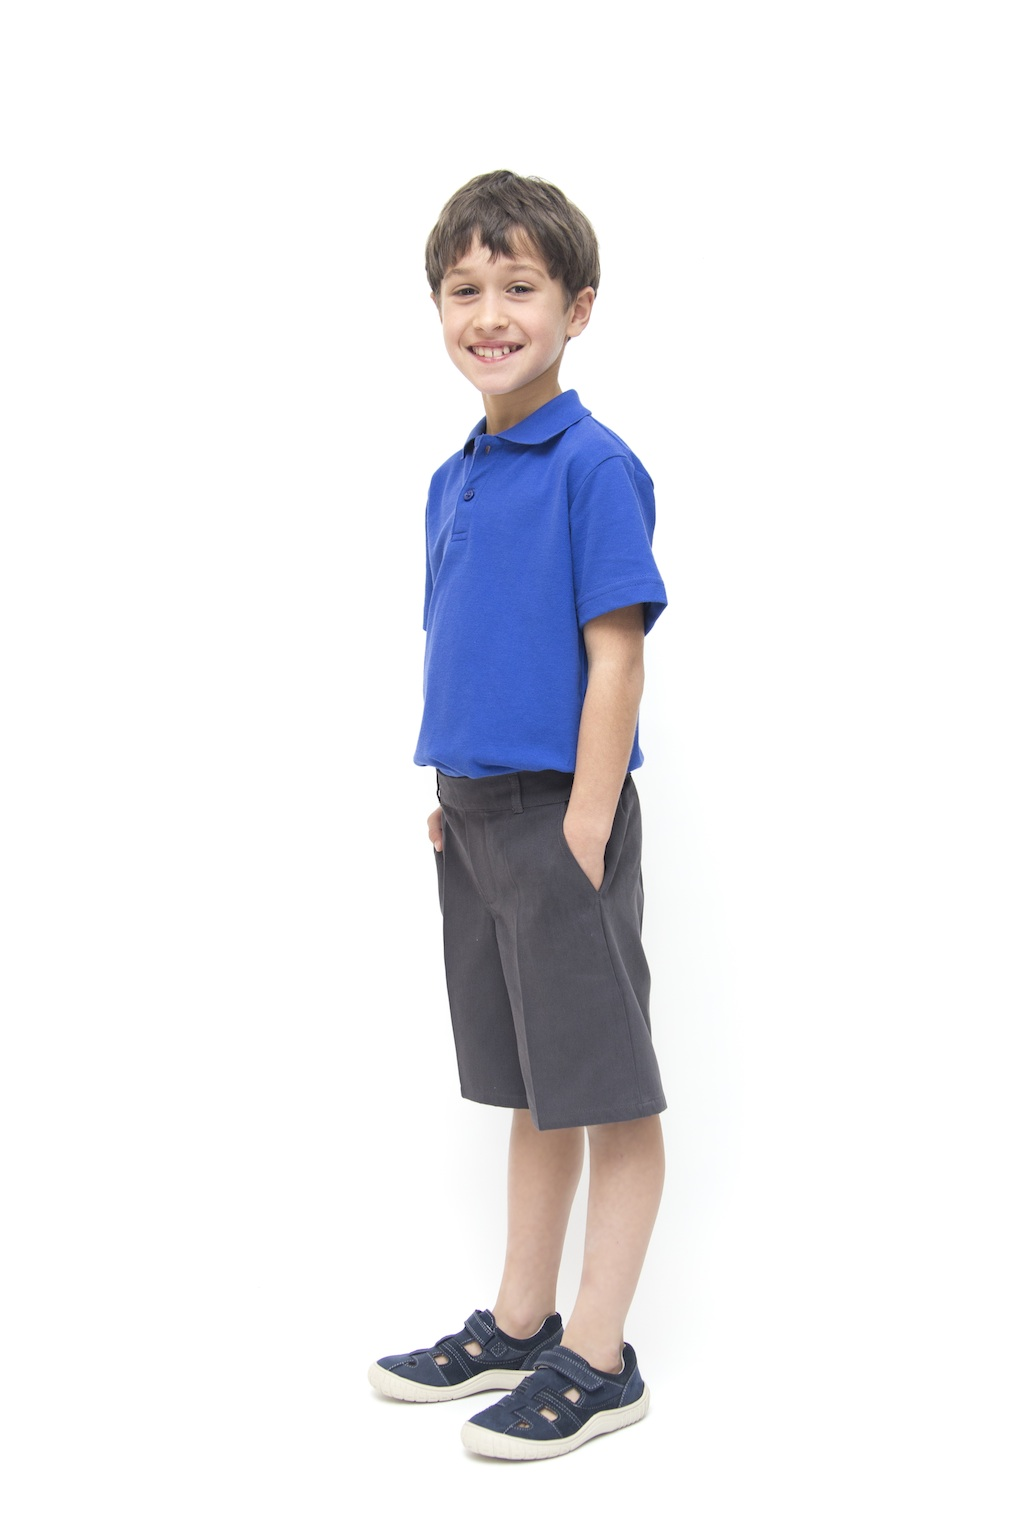 School shorts that stand up to school life! Stain resistant and hard wearing, chose your perfect school short here.